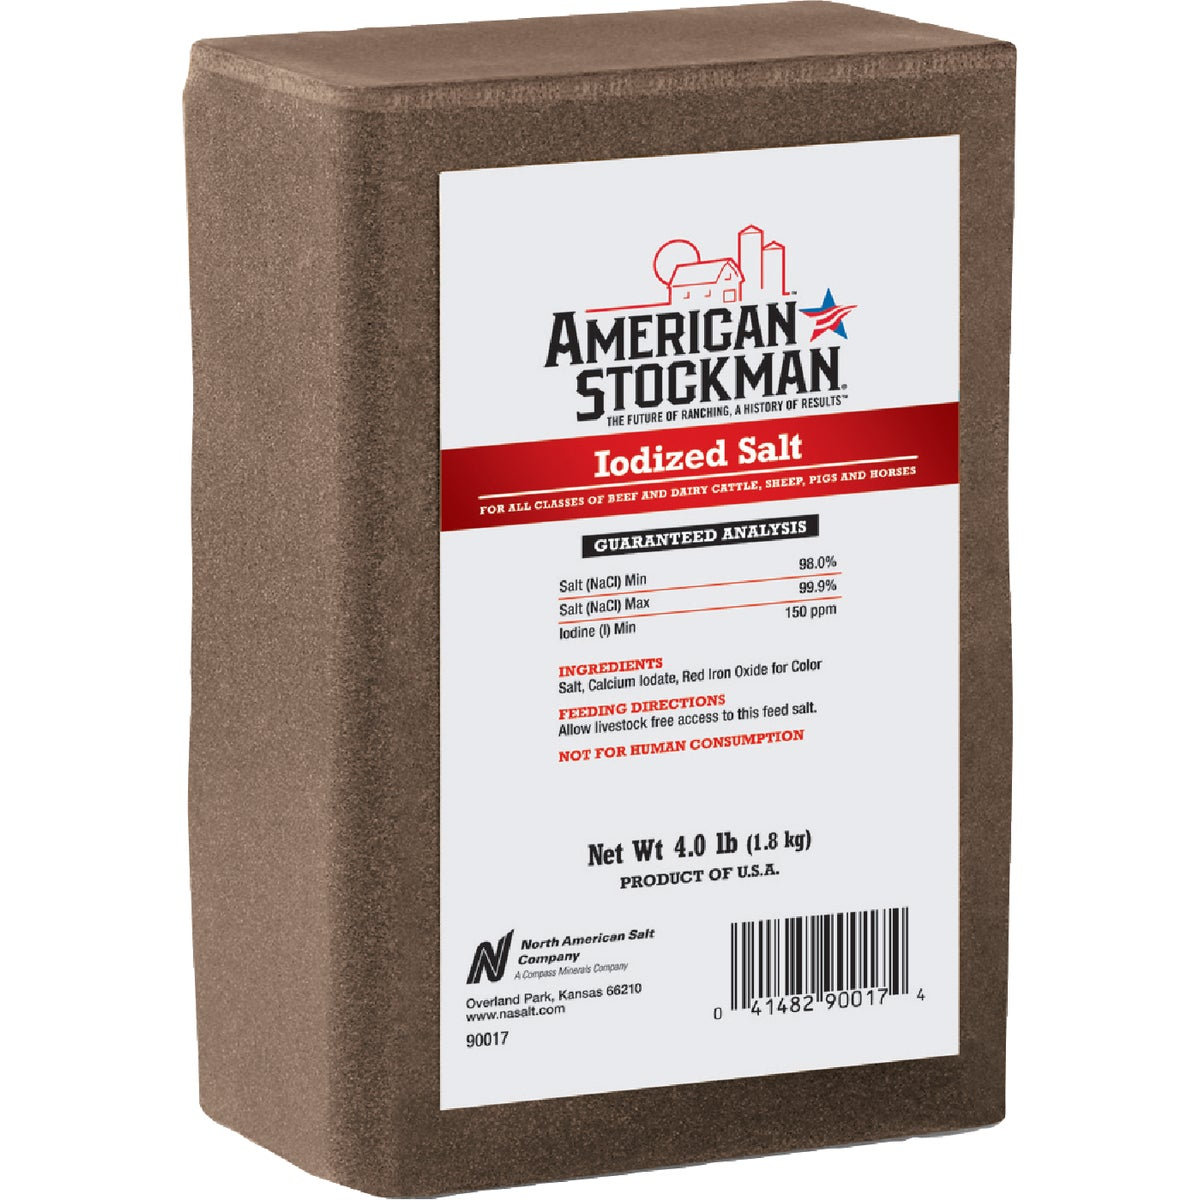 4.4LB IODIZED BRICK - 90017 by North American Salt